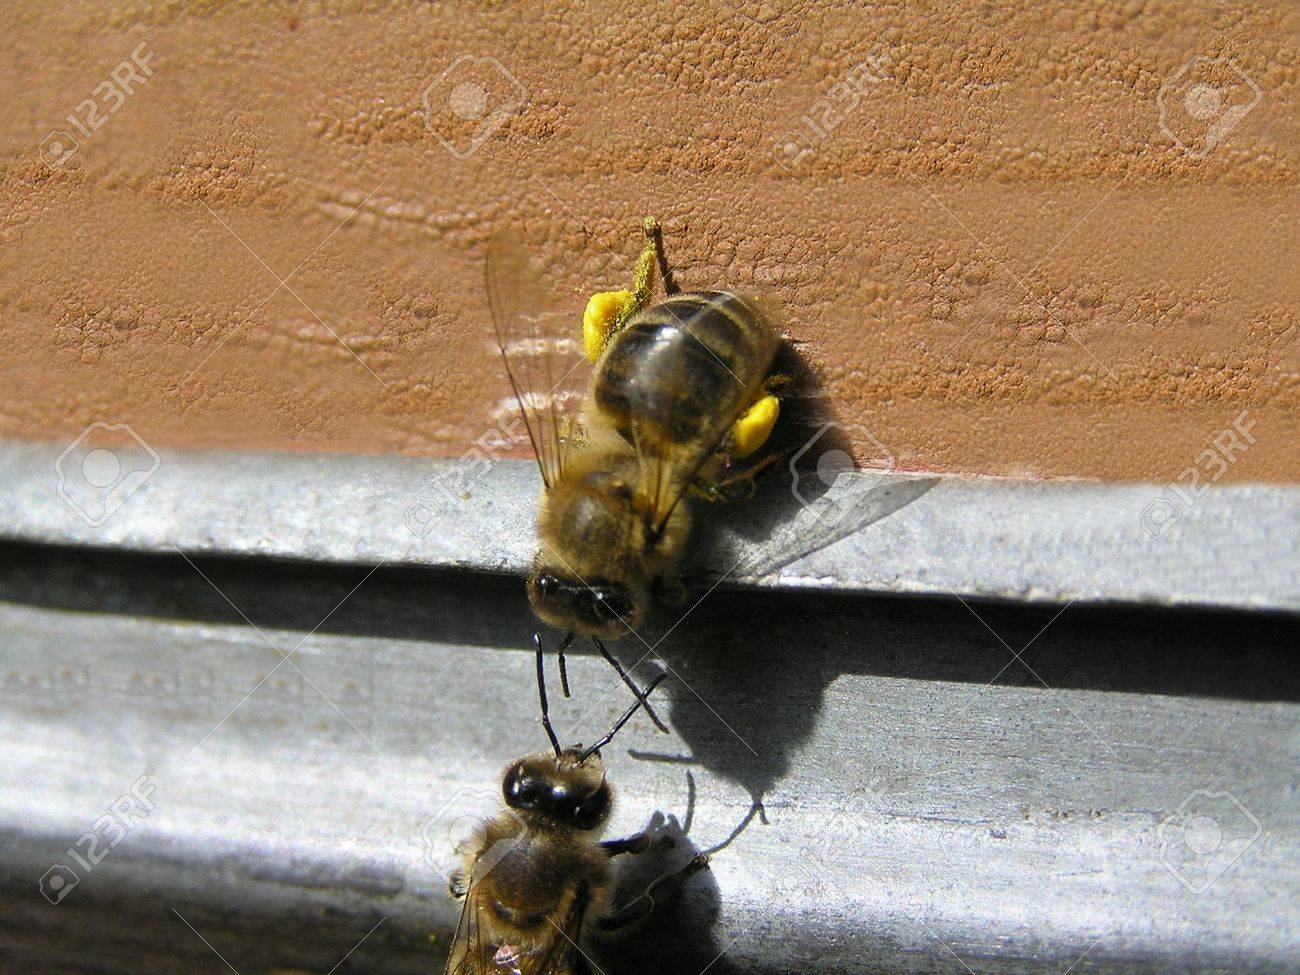 Bees are divided into groups, each of that executes the functions. In this case one bee delivered pollen in a beehive. Other bee checks her for belonging to this family. - 12035613